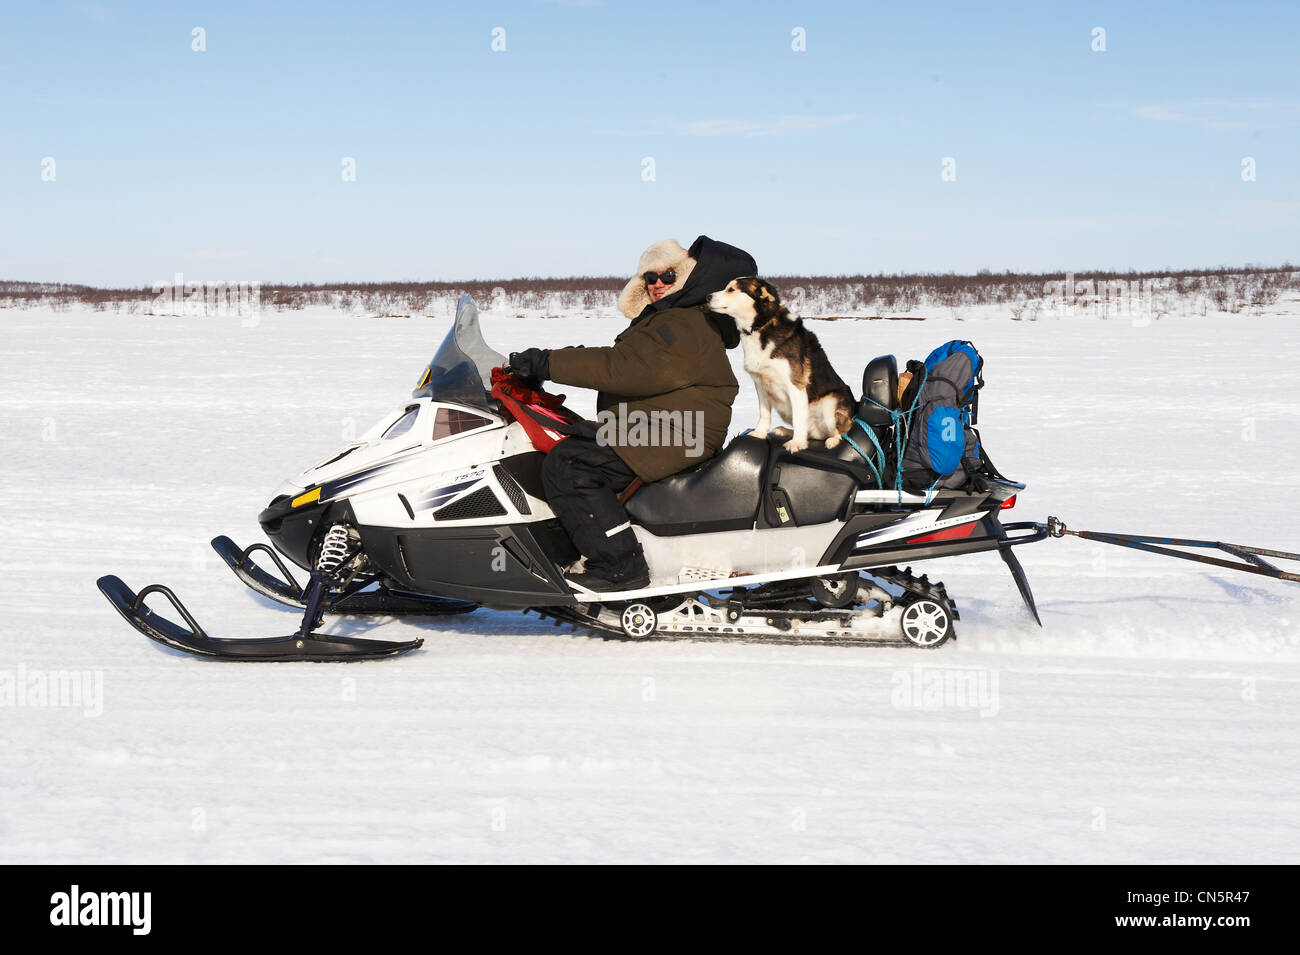 Norway, Lapland, Finnmark County, Karasjok, the great annual reinder migration the travel whit snow mobile to puttig - Stock Image